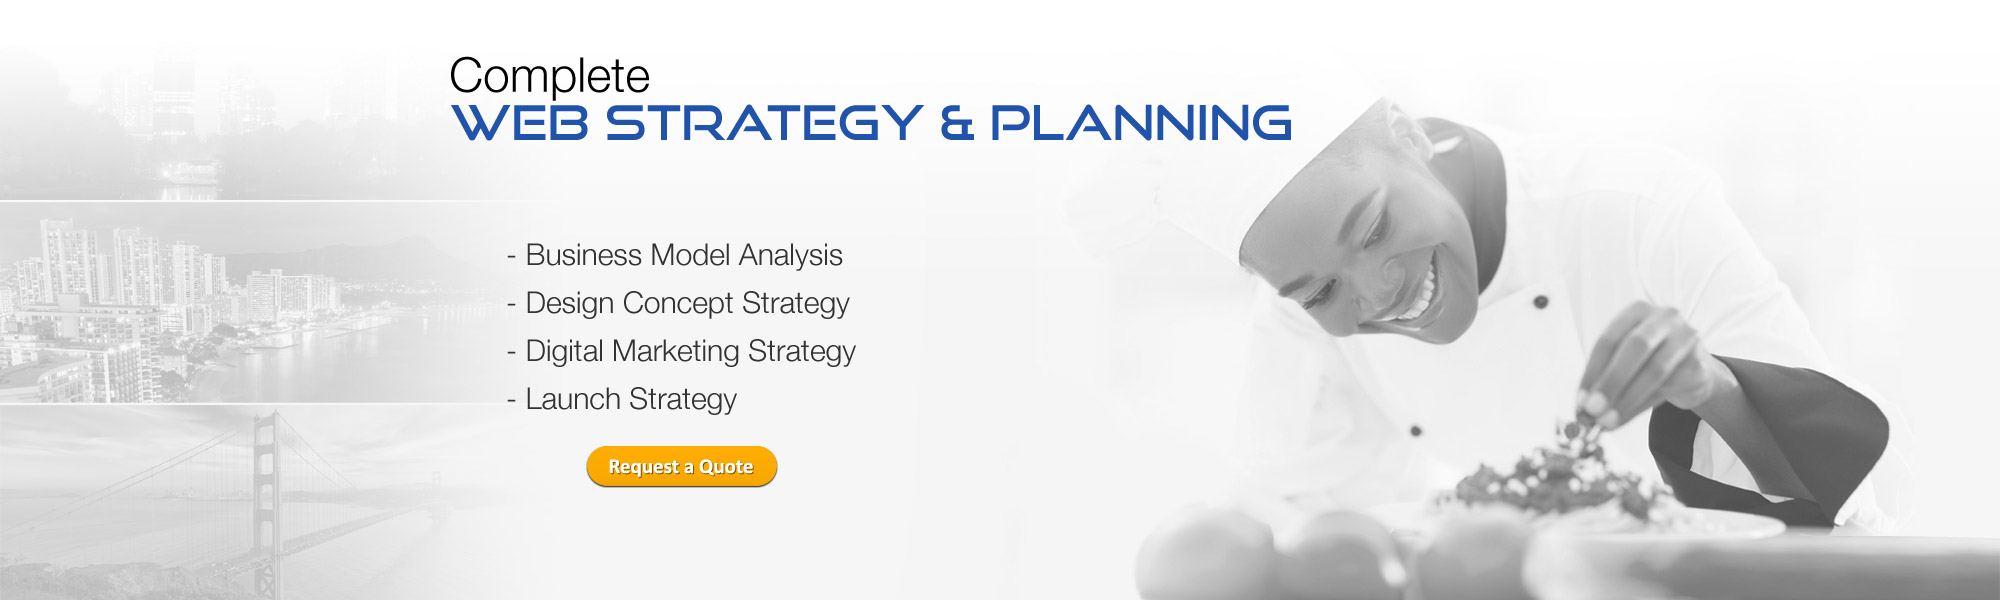 Complete Web Strategy and Planning